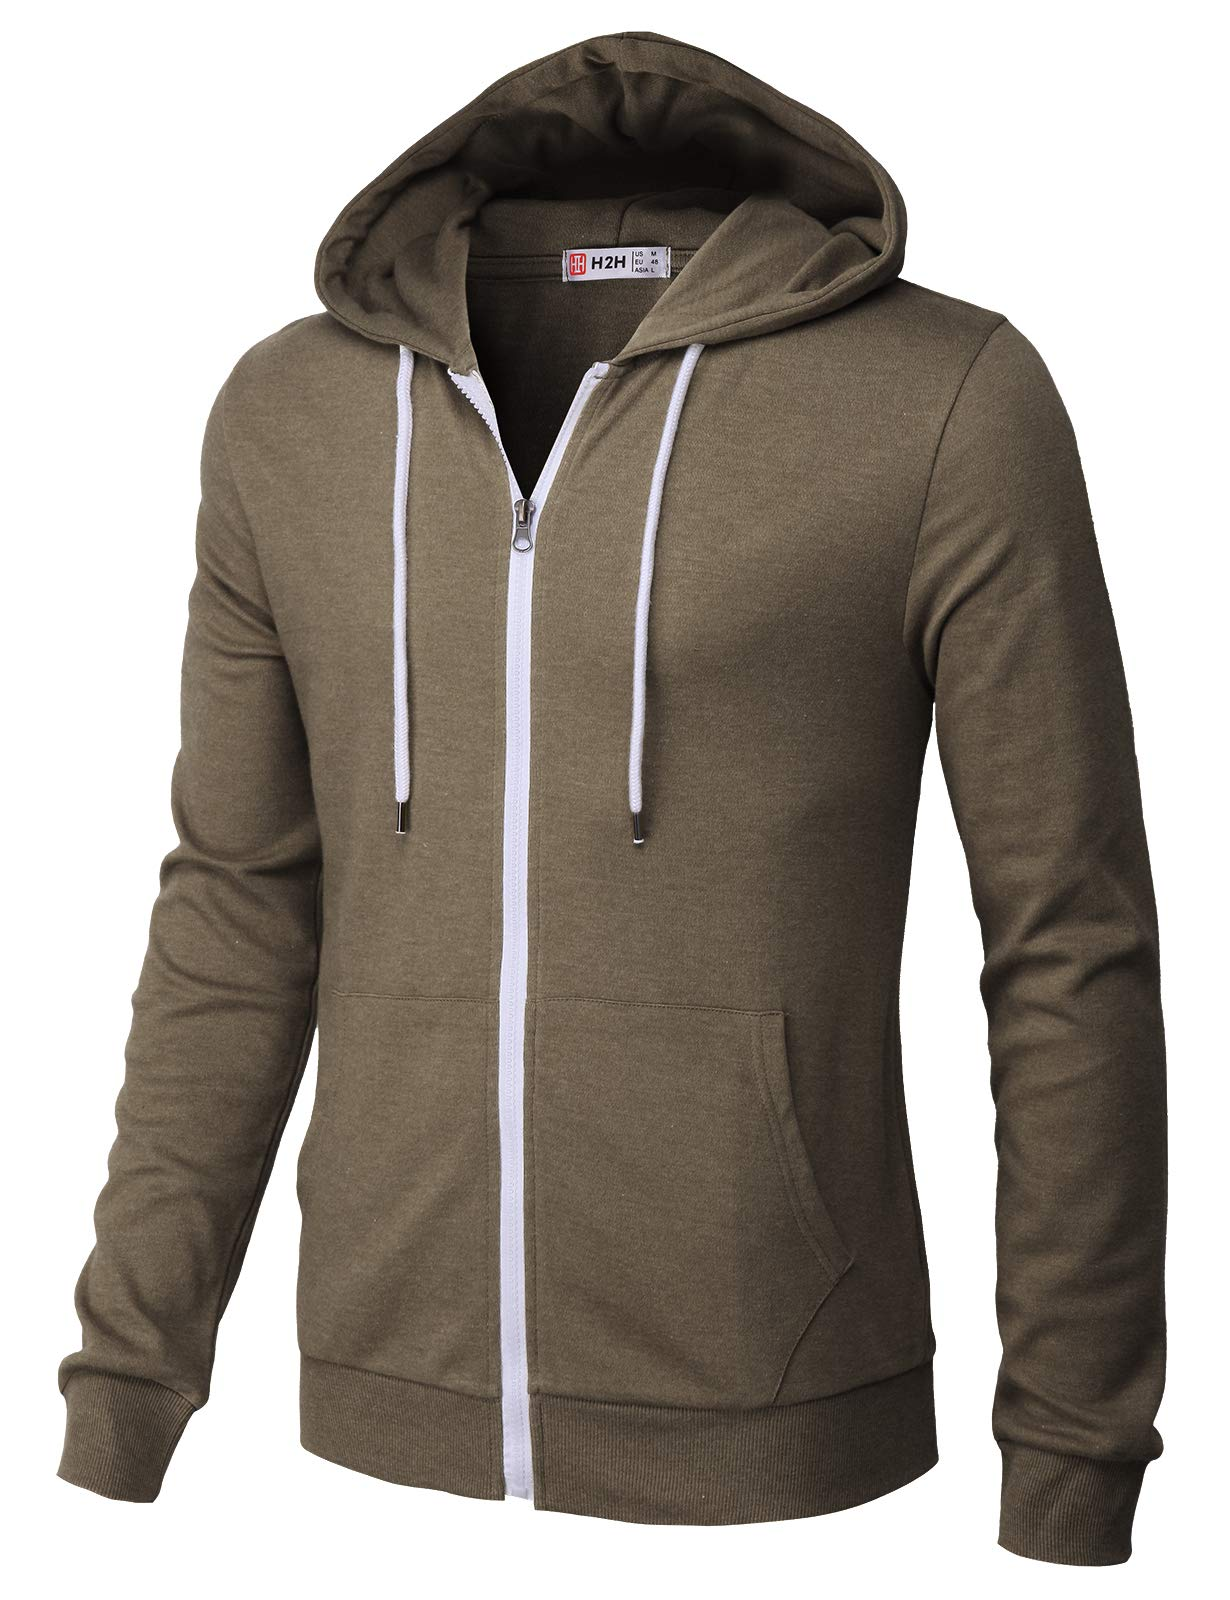 H2H Mens Casual Zip up Hoodie Basic Long Sleeve Zip up HEATHERBROWN US 2XL/Asia 3XL (CMOHOL048) by H2H (Image #2)